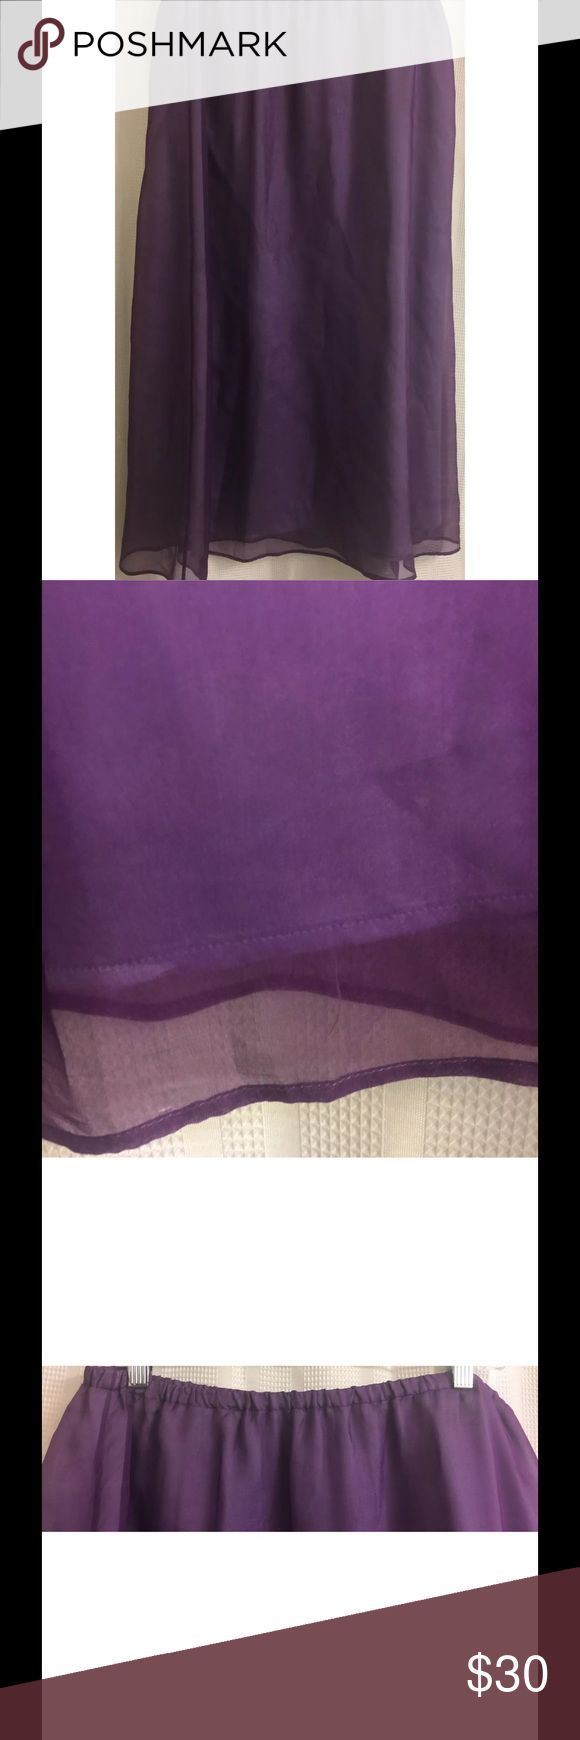 "Eileen Fisher Purple Sheer Long Maxi Skirt Eileen Fisher Long Maxi Skirt Petite L Large Violet Purple Sheer Silk Bohemian  Gorgeous maxi skirt with two layers of material - outer layer is a sheer violet purple, inner layer is a light lavender Elastic waist 100% Silk Excellent, gently used condition - no flaws noted.  Logo tag is only fastened on one side (see pix) Approximate measurements: Waist = 16"" across, elastic waist not stretched Length = 36"" from waist to hem Eileen Fisher Skirts…"